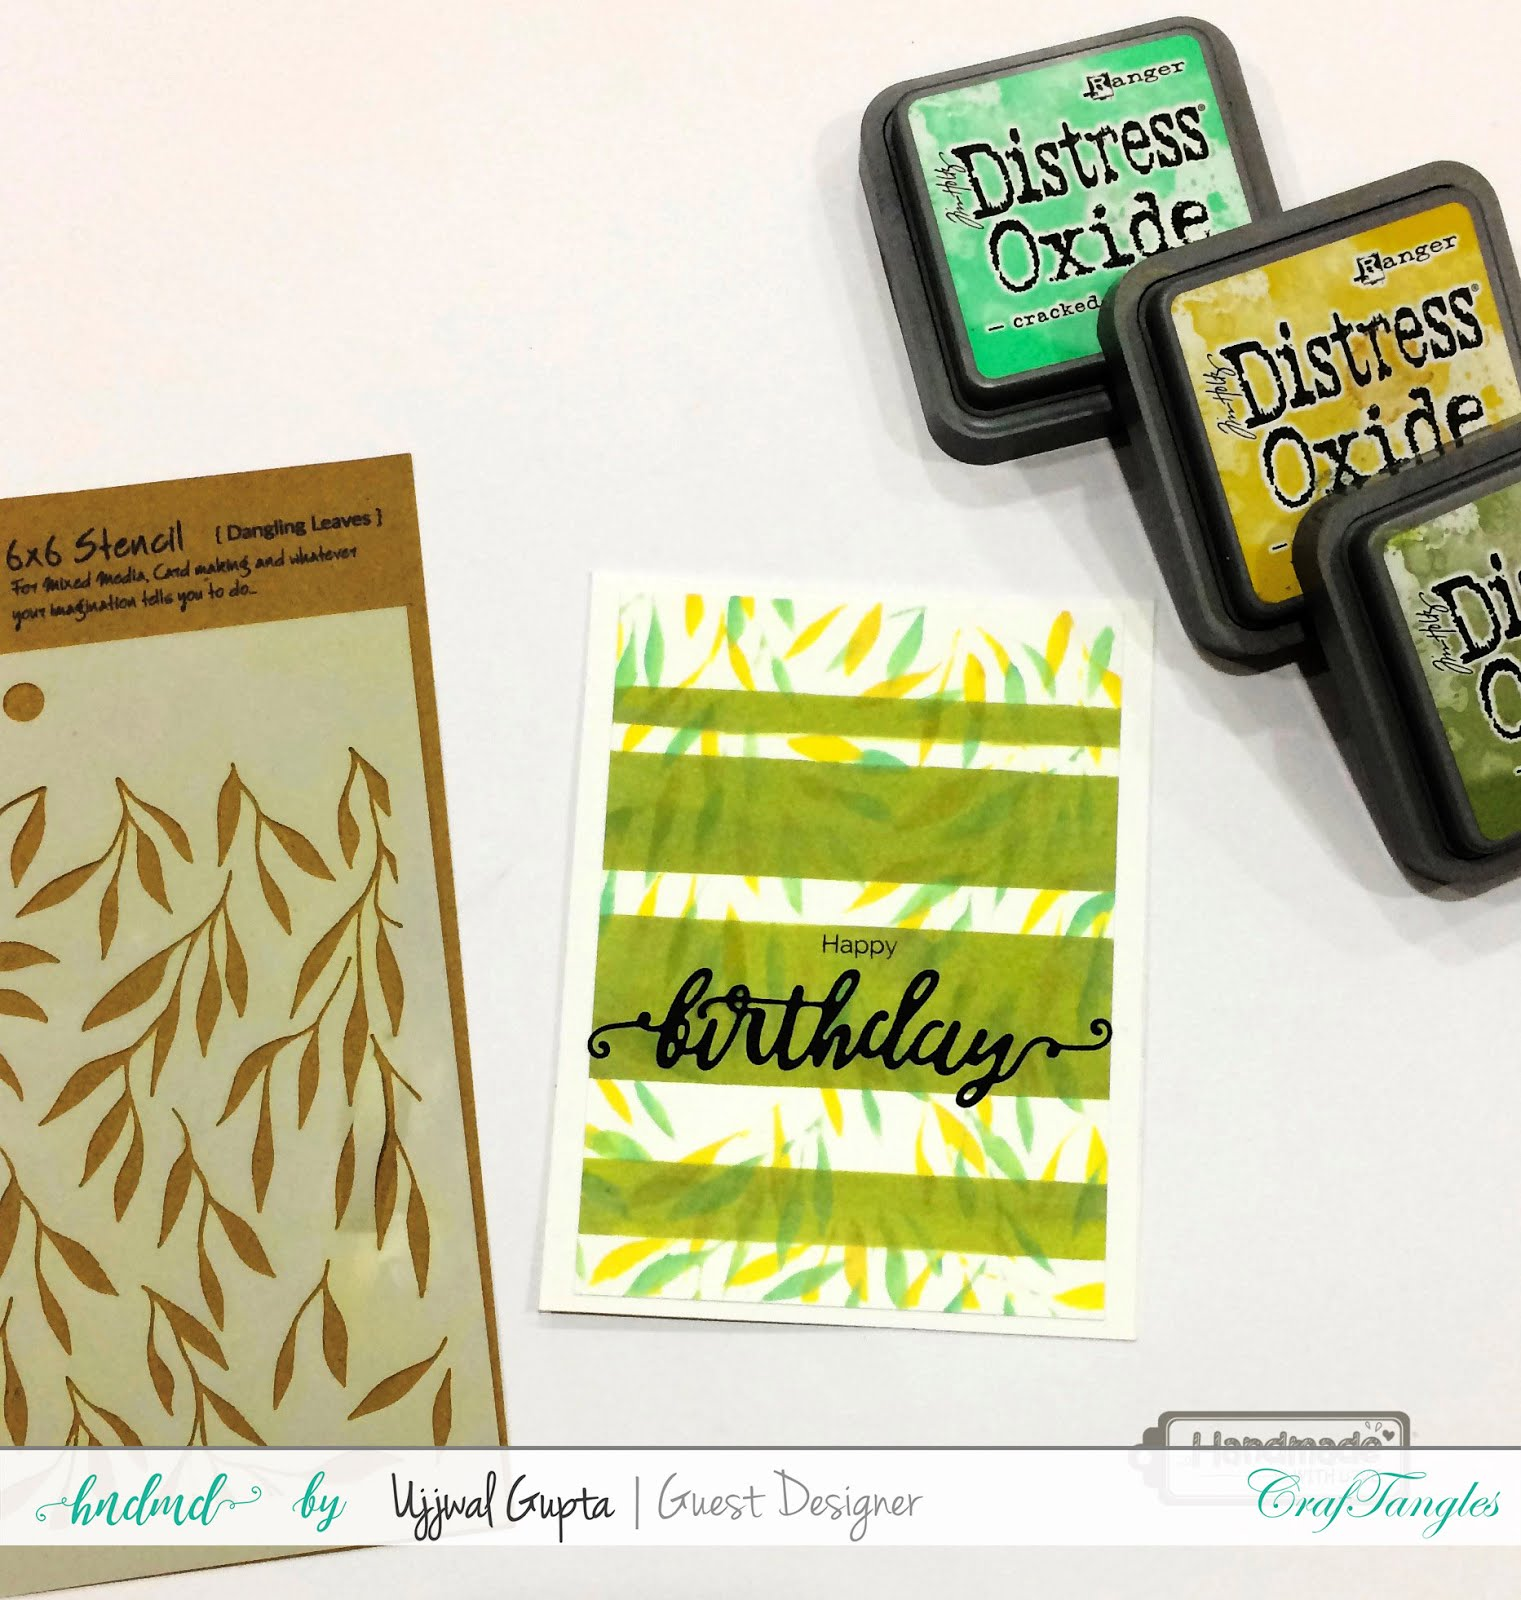 5 Cards using CrafTangles stamps and stencils 3